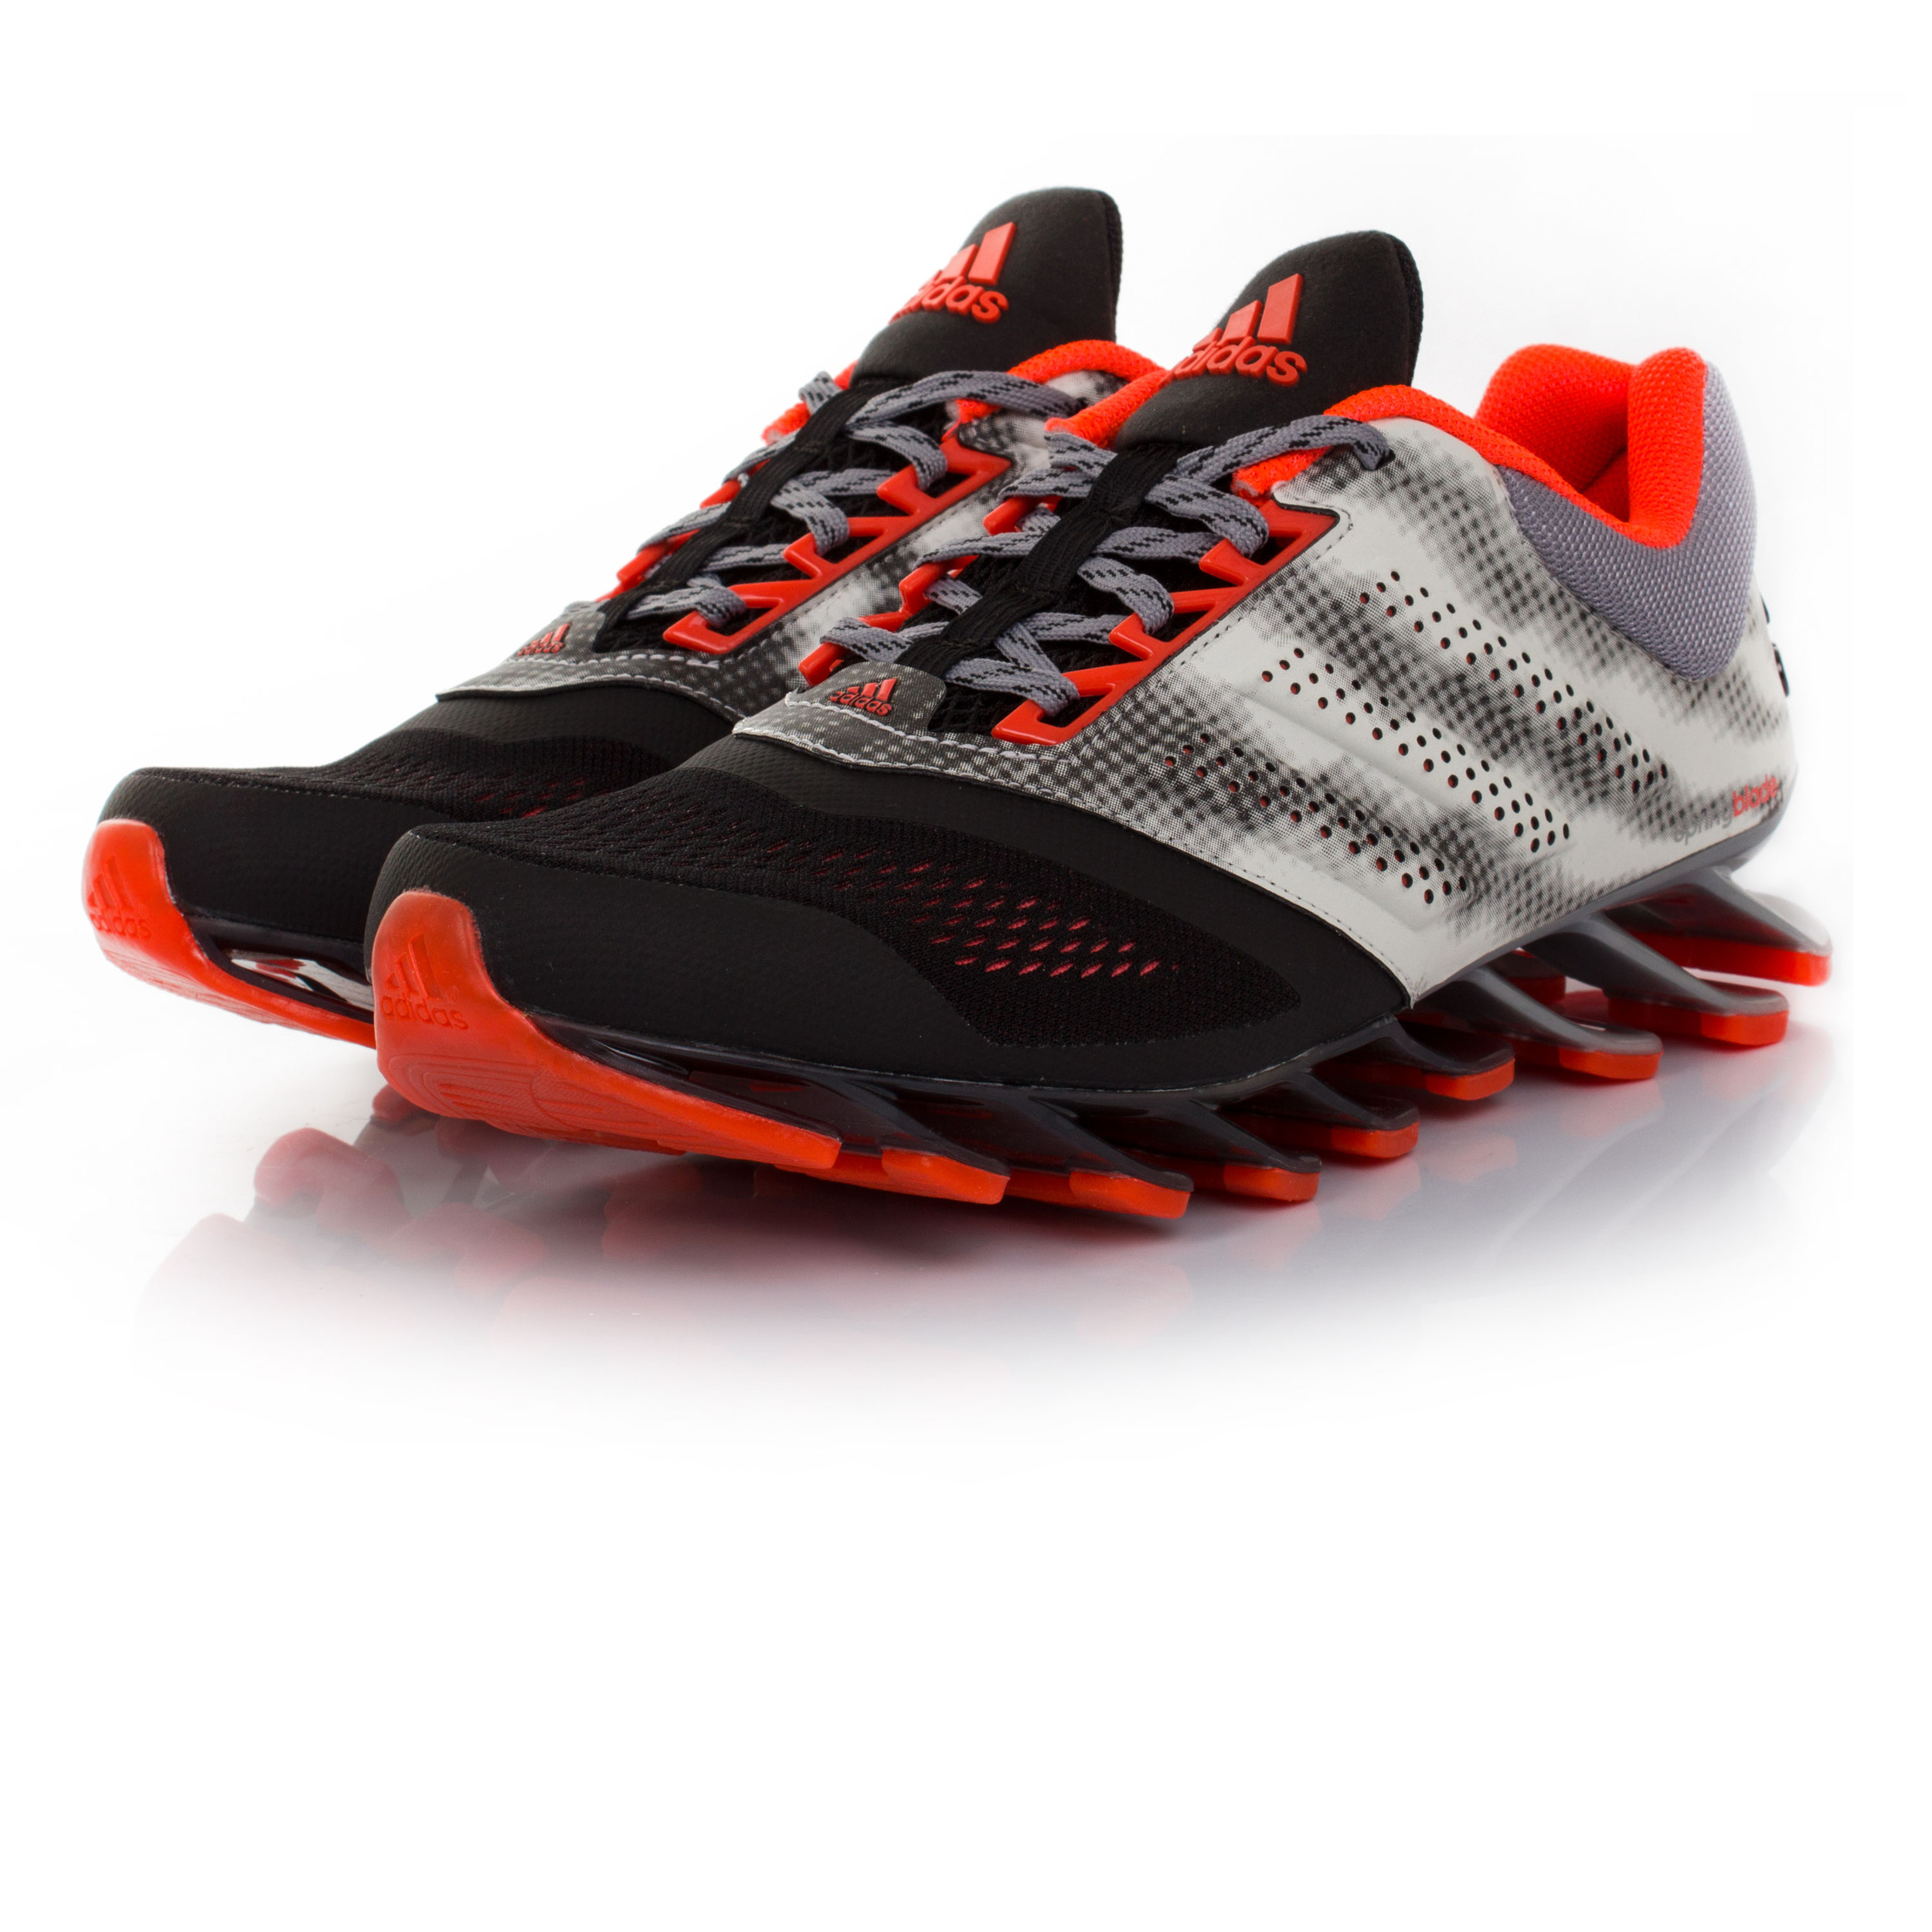 adidas springblade drive 2 herren laufschuhe turnschuhe sport schuhe mehrfarbig. Black Bedroom Furniture Sets. Home Design Ideas